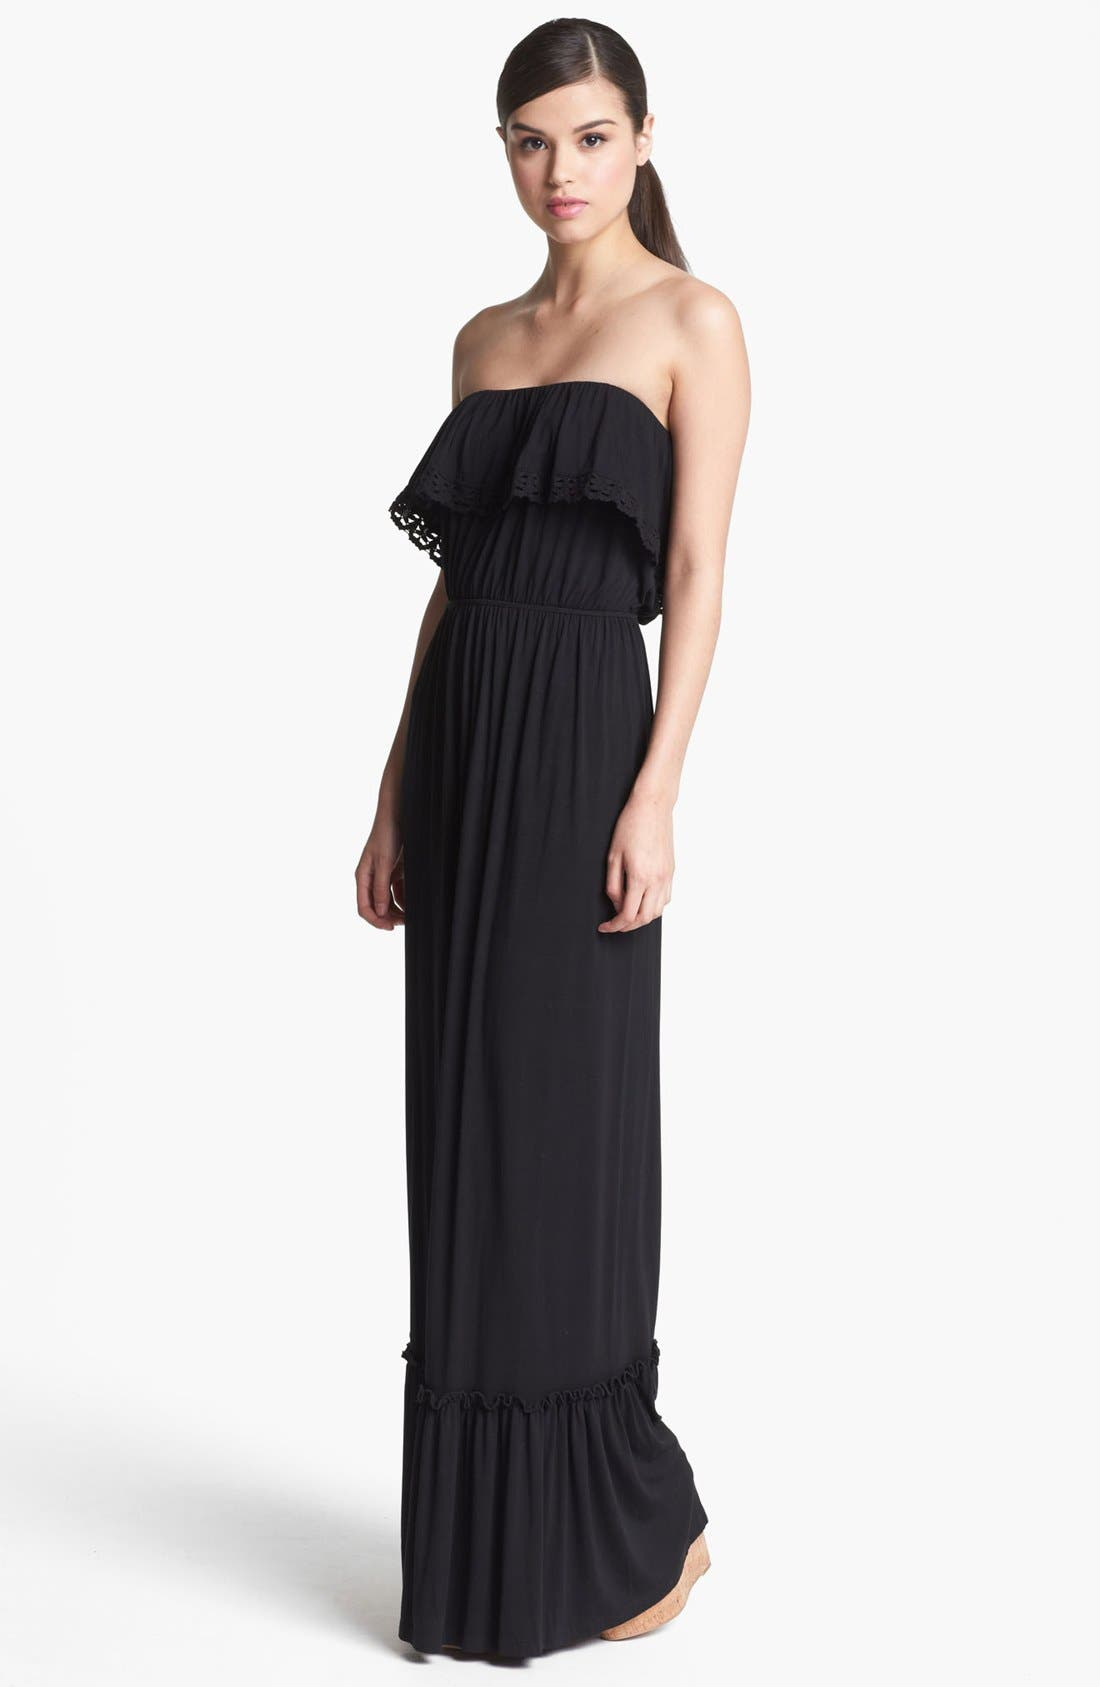 Ruffled Strapless Maxi Dress,                         Main,                         color, Black